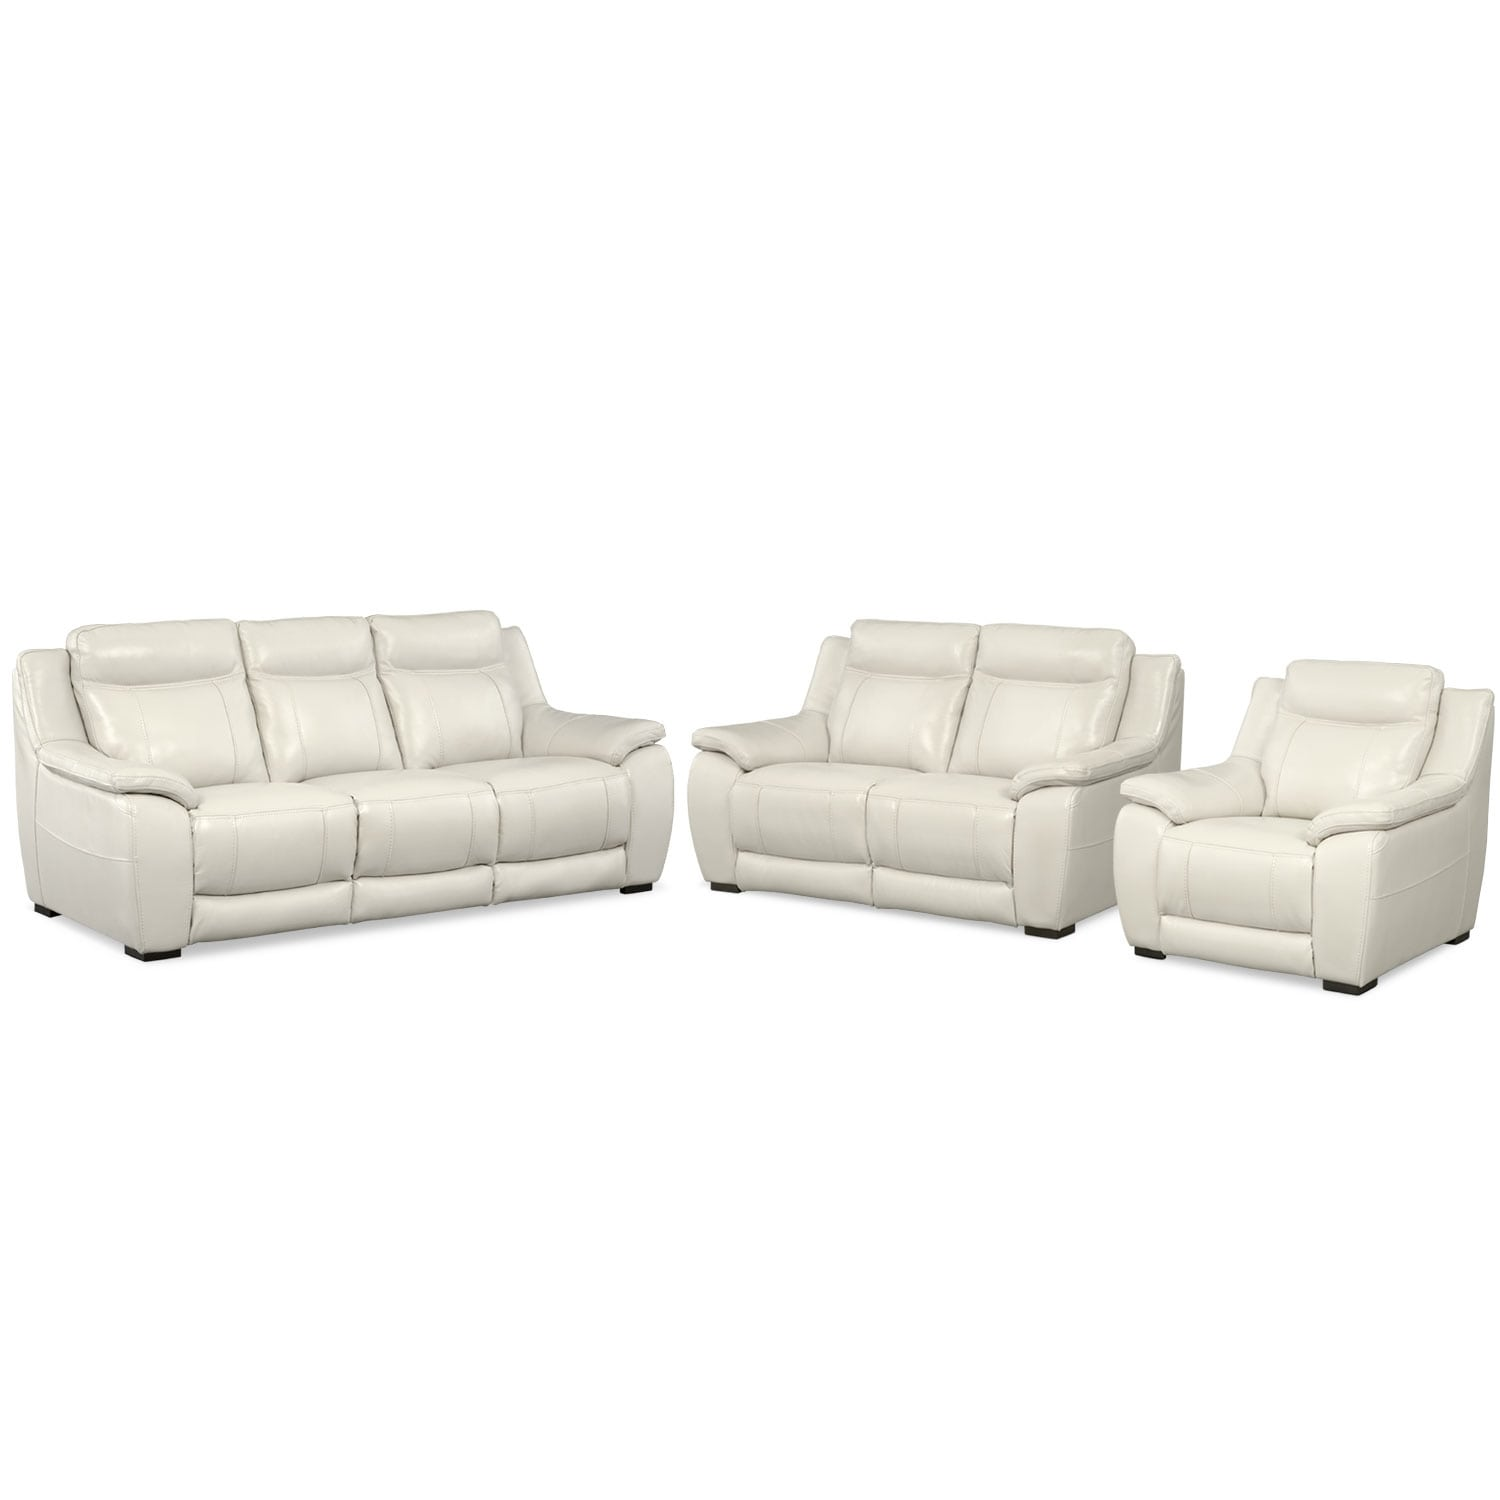 Lido Sofa, Loveseat and Chair Set - Ivory